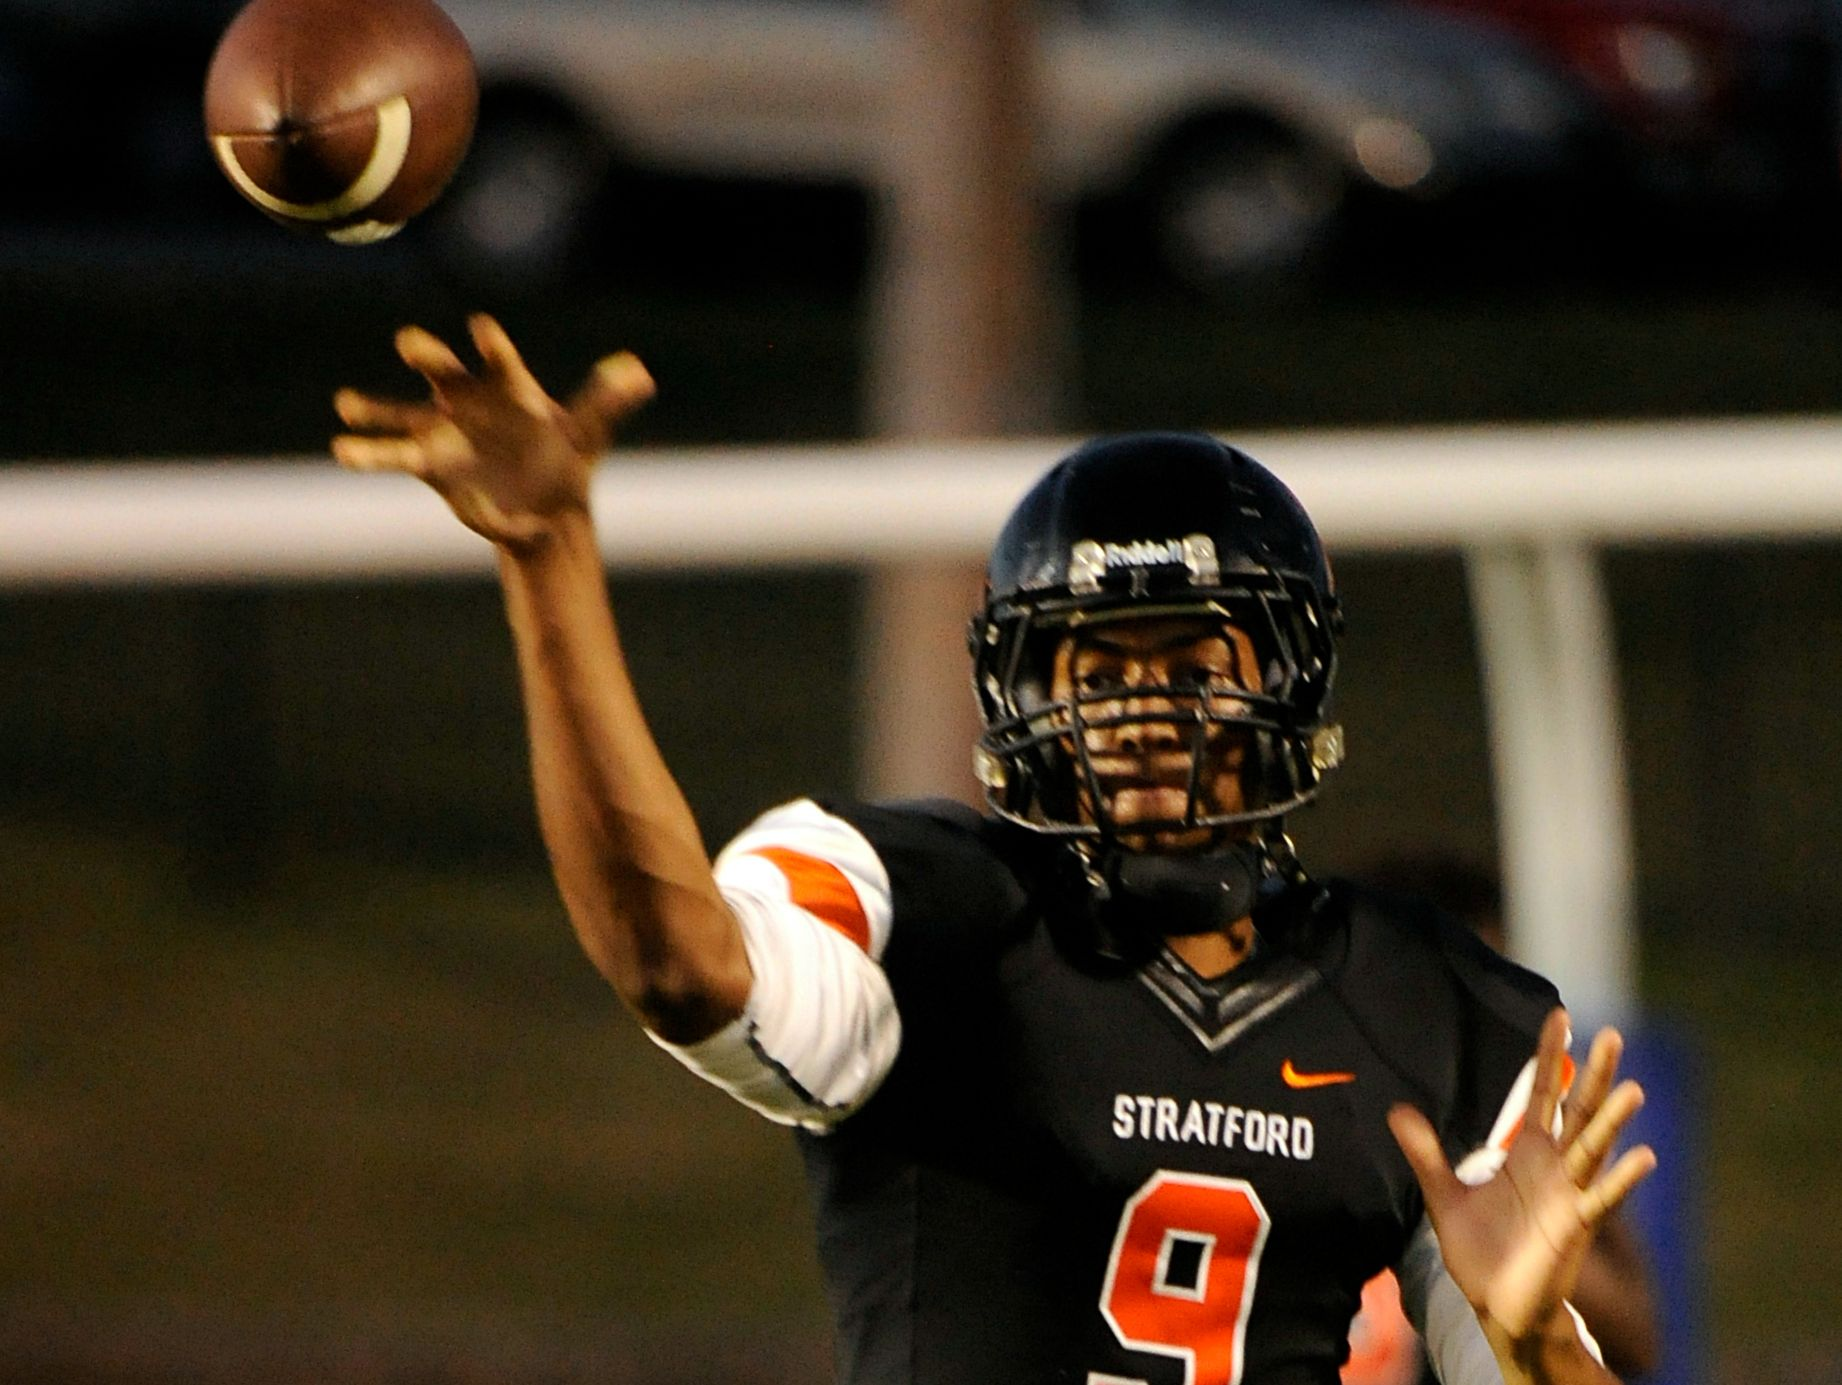 Stratford quarterback Josh Trueheart will miss the remainder of his senior season with a torn ACL.